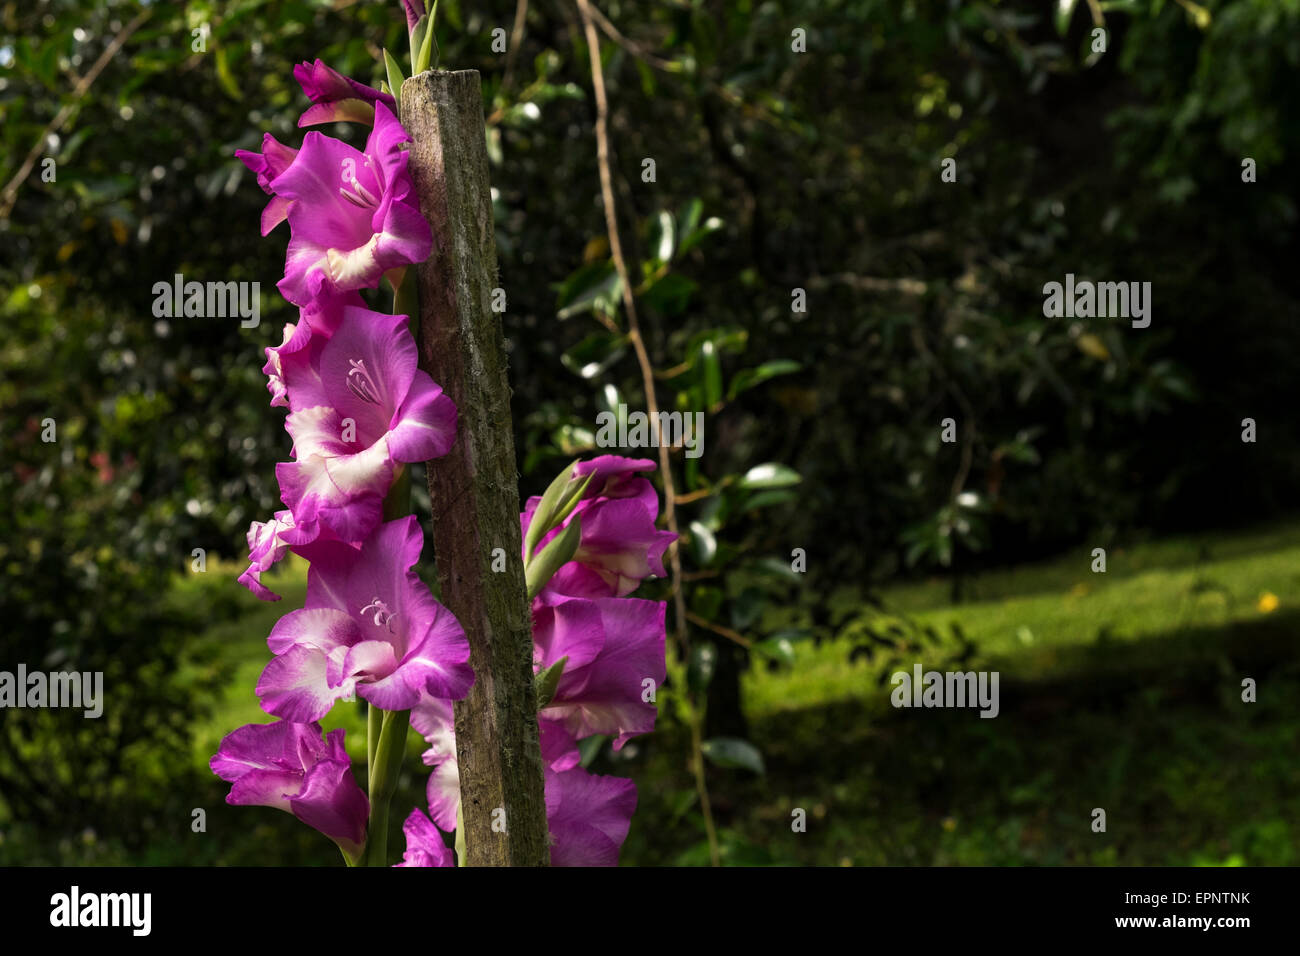 Pink gladioli in the garden supported with a wooden post, Awapiriti farm, Murchison, New Zealand - Stock Image